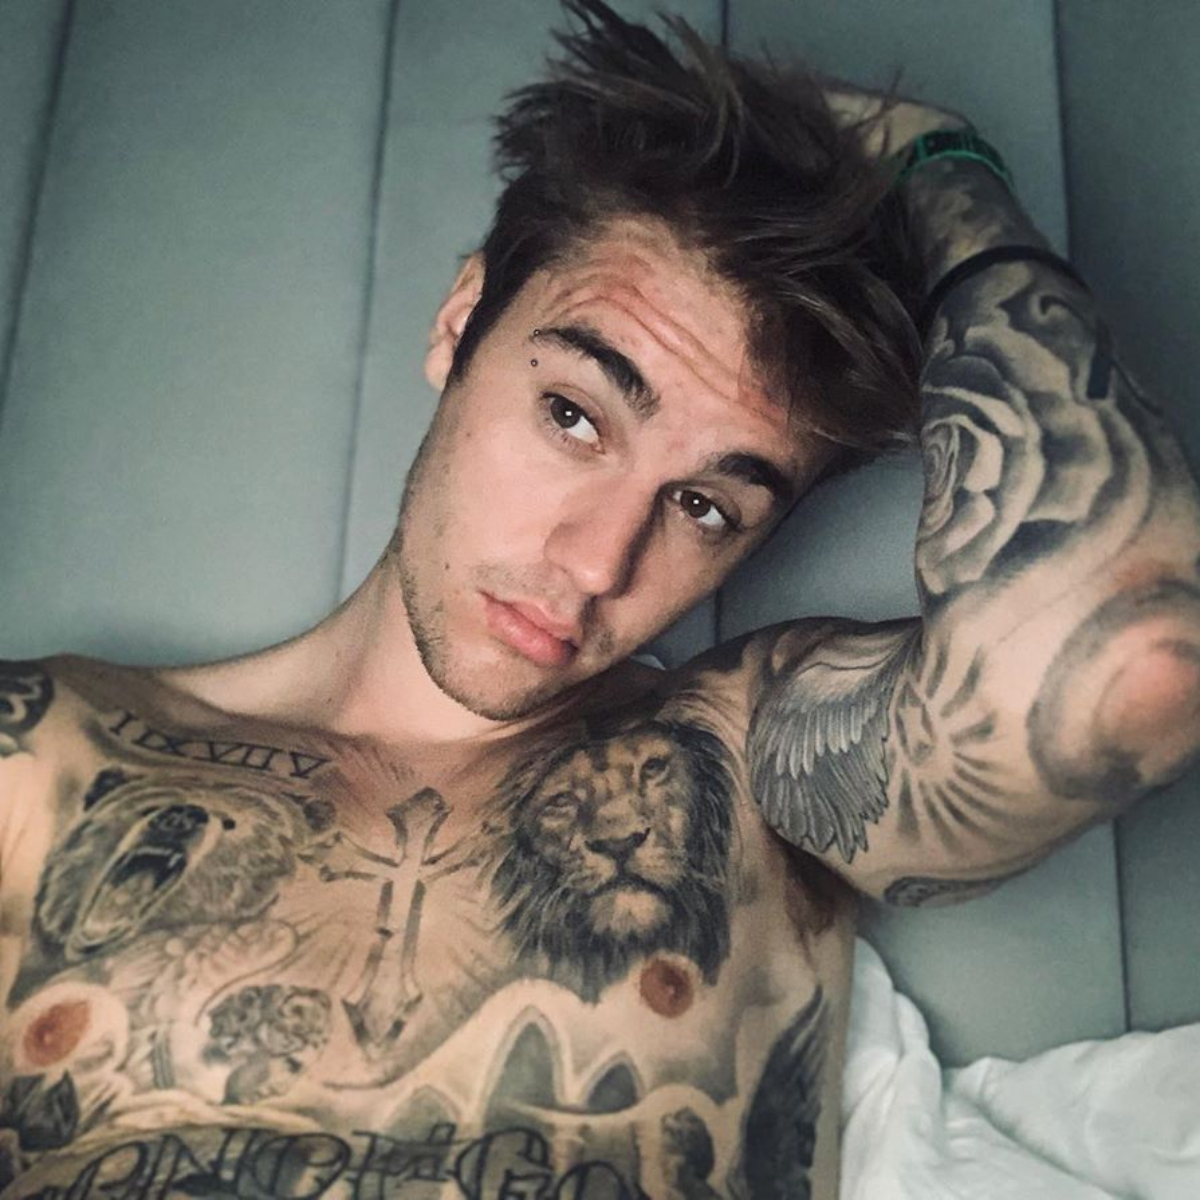 Amidst Taylor Swift & Scooter Braun battle, Justin Bieber confesses he's having a 'rough day'